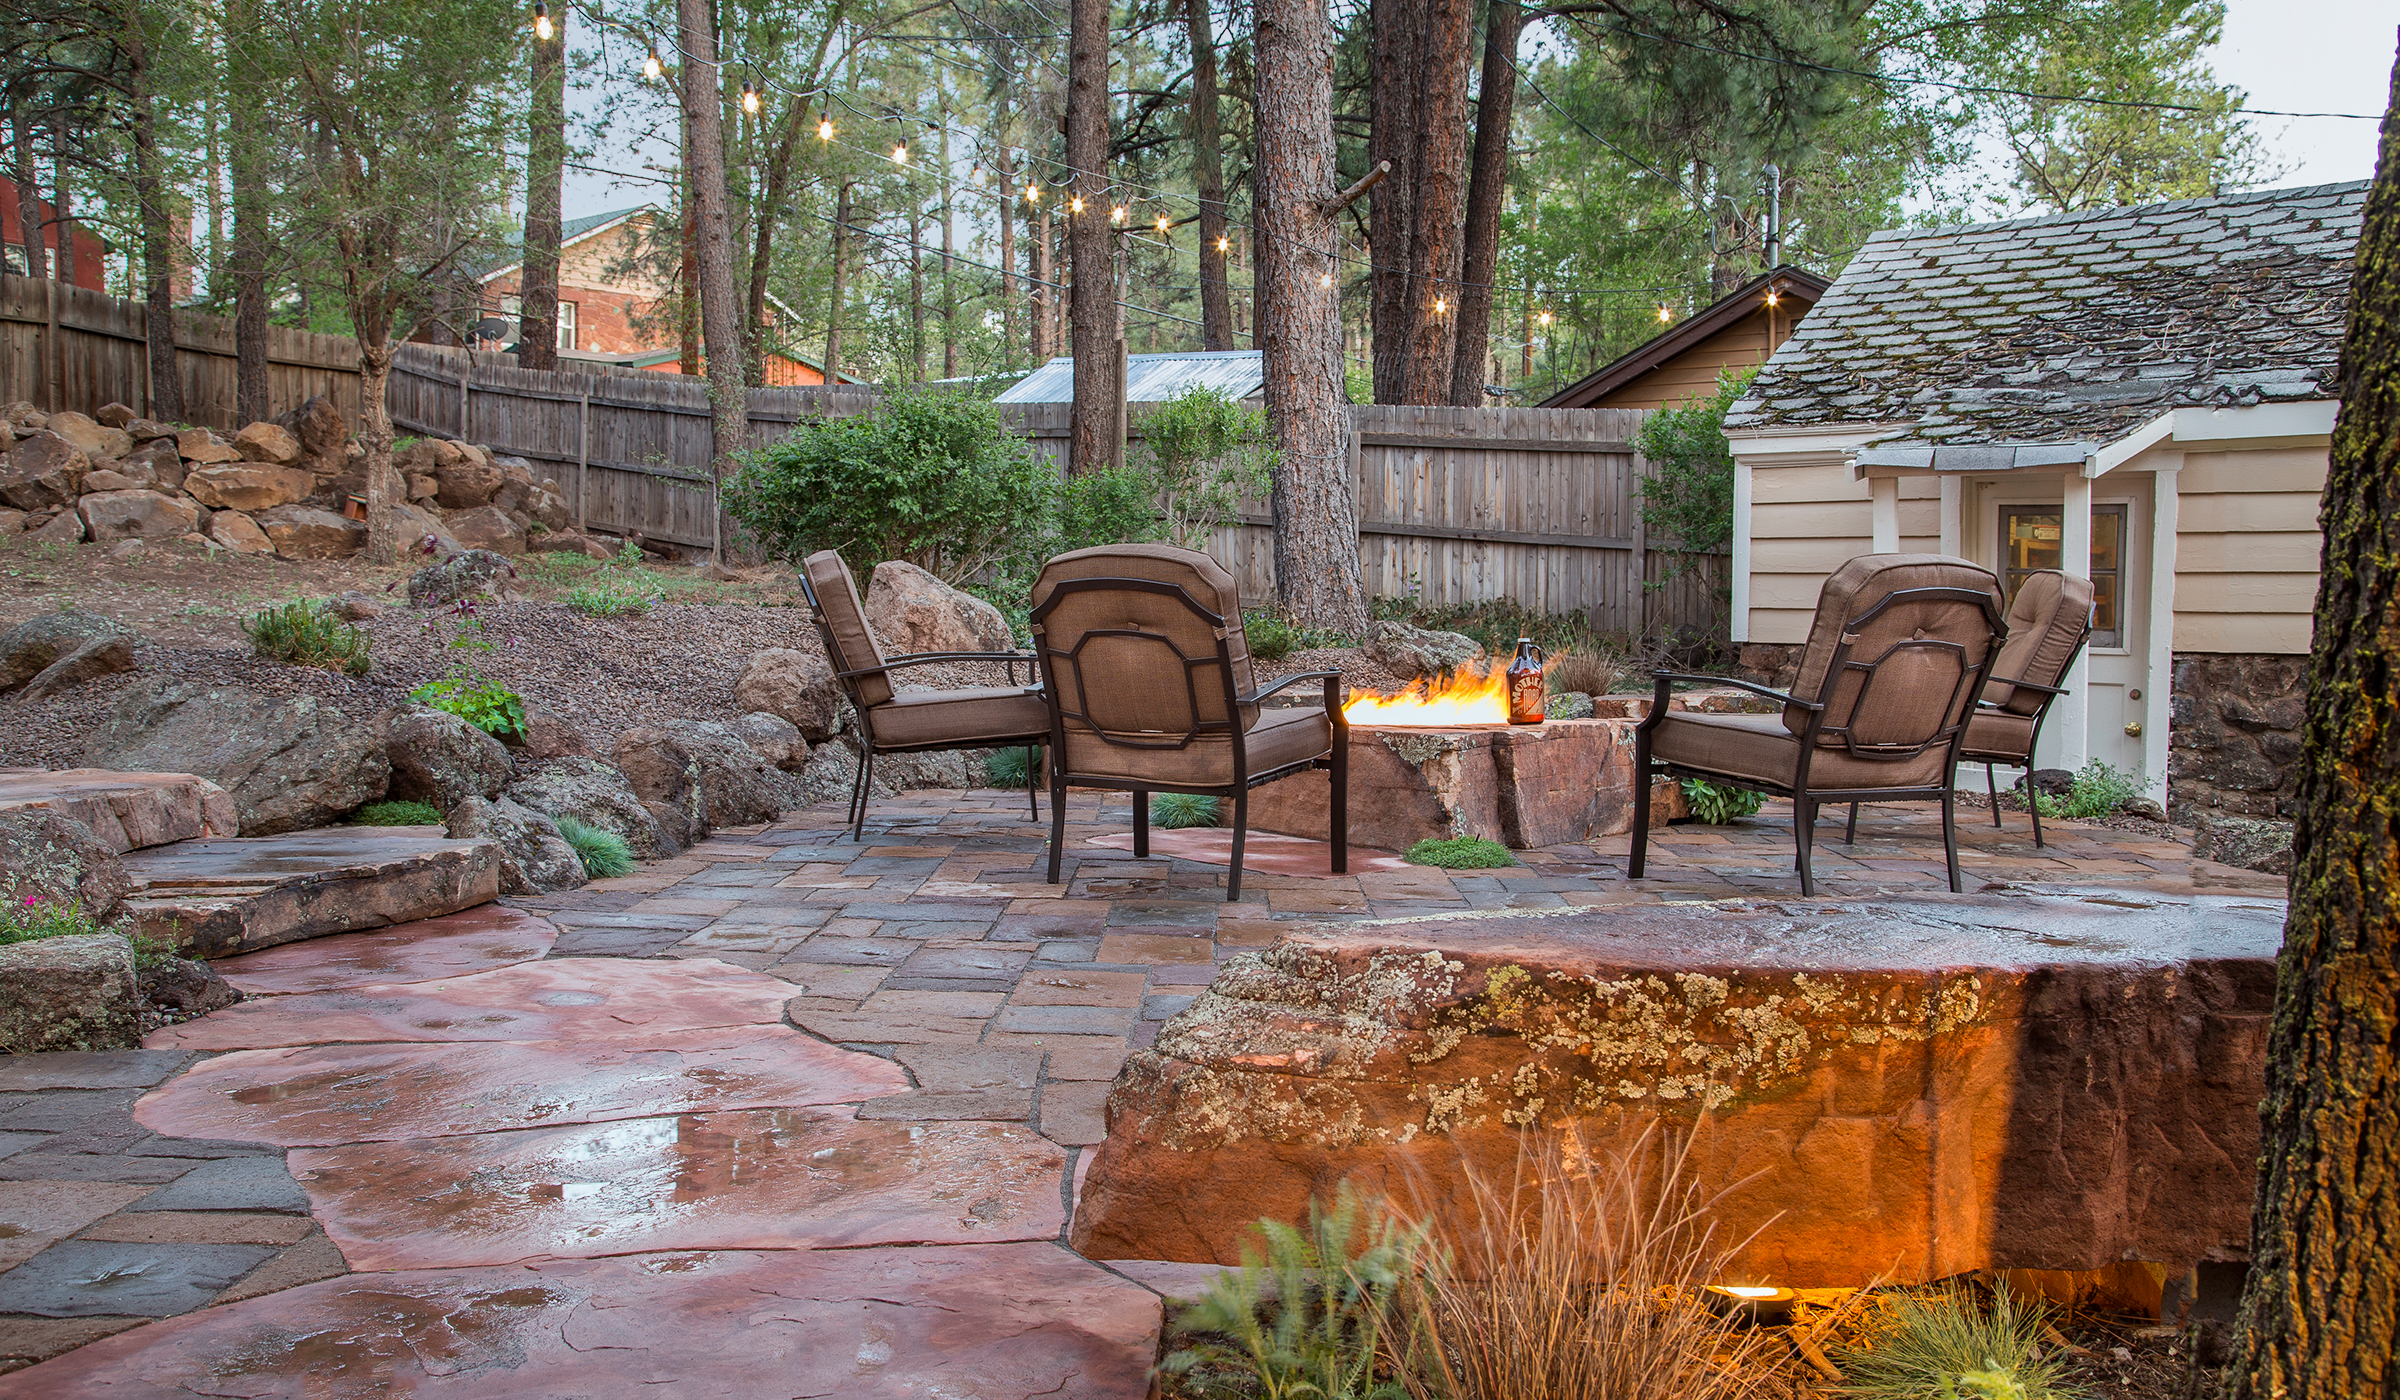 kaibab landscaping Flagstaff Arizona